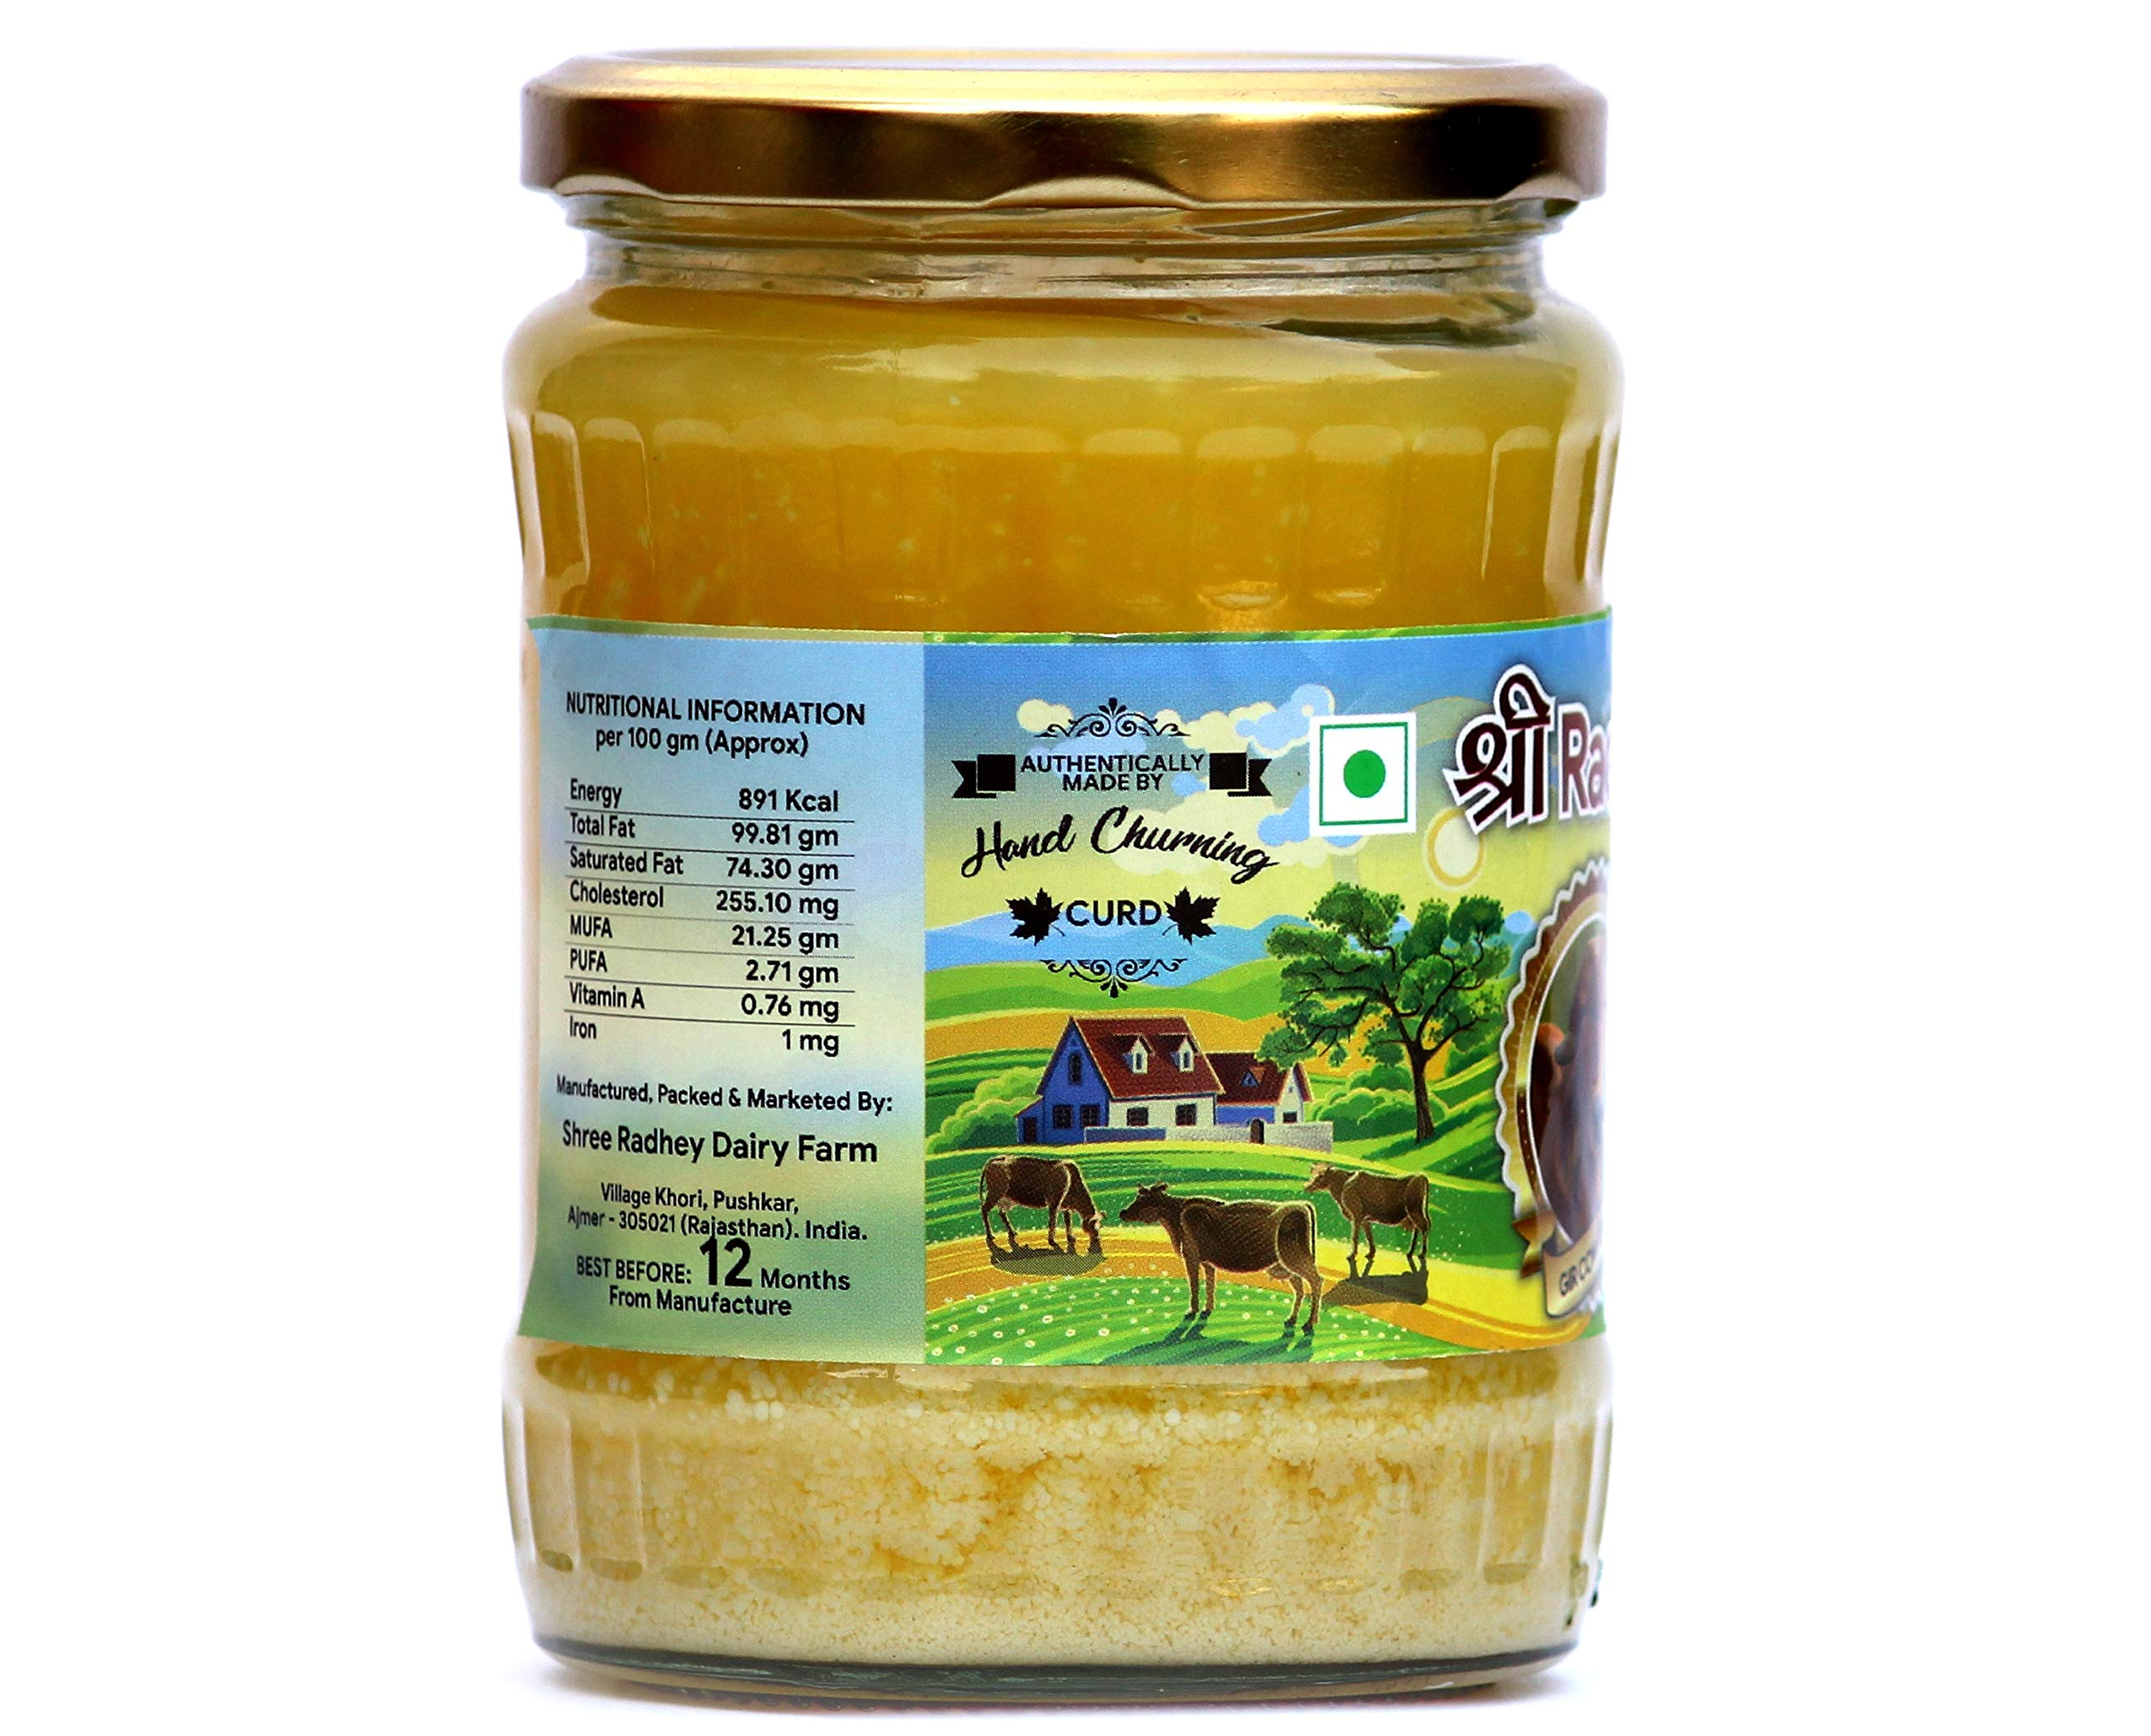 Shree Radhey Certified A2 Gir Cow Ghee - Clarified Butter - 100 % Grass Fed- (Traditionaly Churned) 14 oz (400 gm)) by Shree Radhey (Image #2)